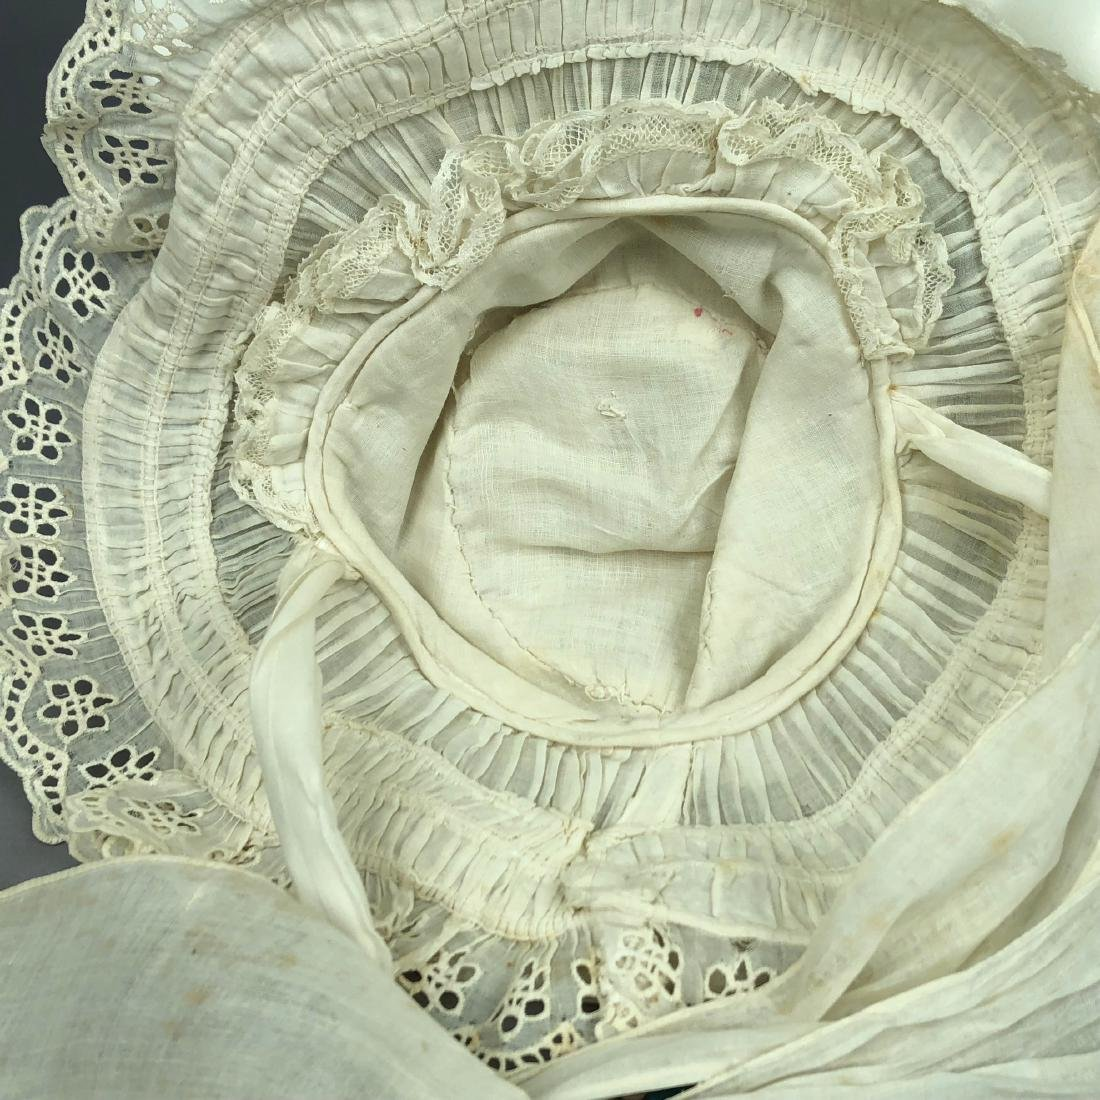 TAN STRAW LADY'S BONNET and GIRL'S HAT, 1850 - 1855 - 7